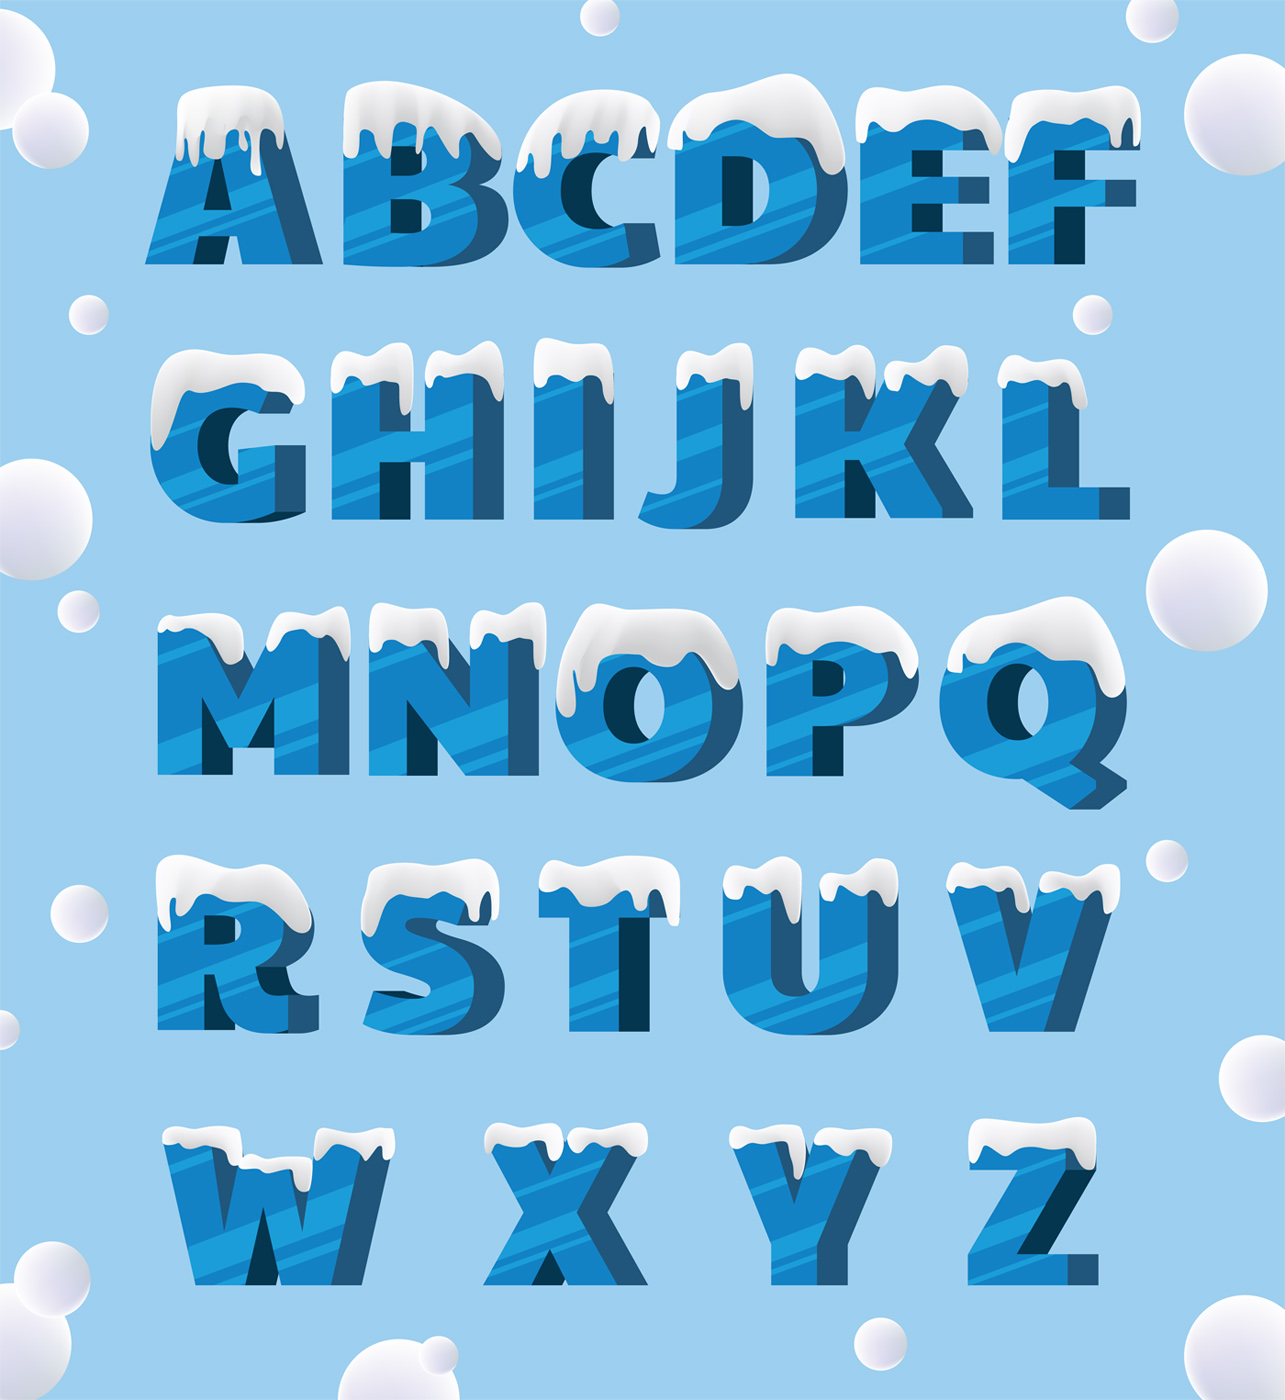 Download Icy Alphabets Vector Pack - Download Free Vectors, Clipart ...